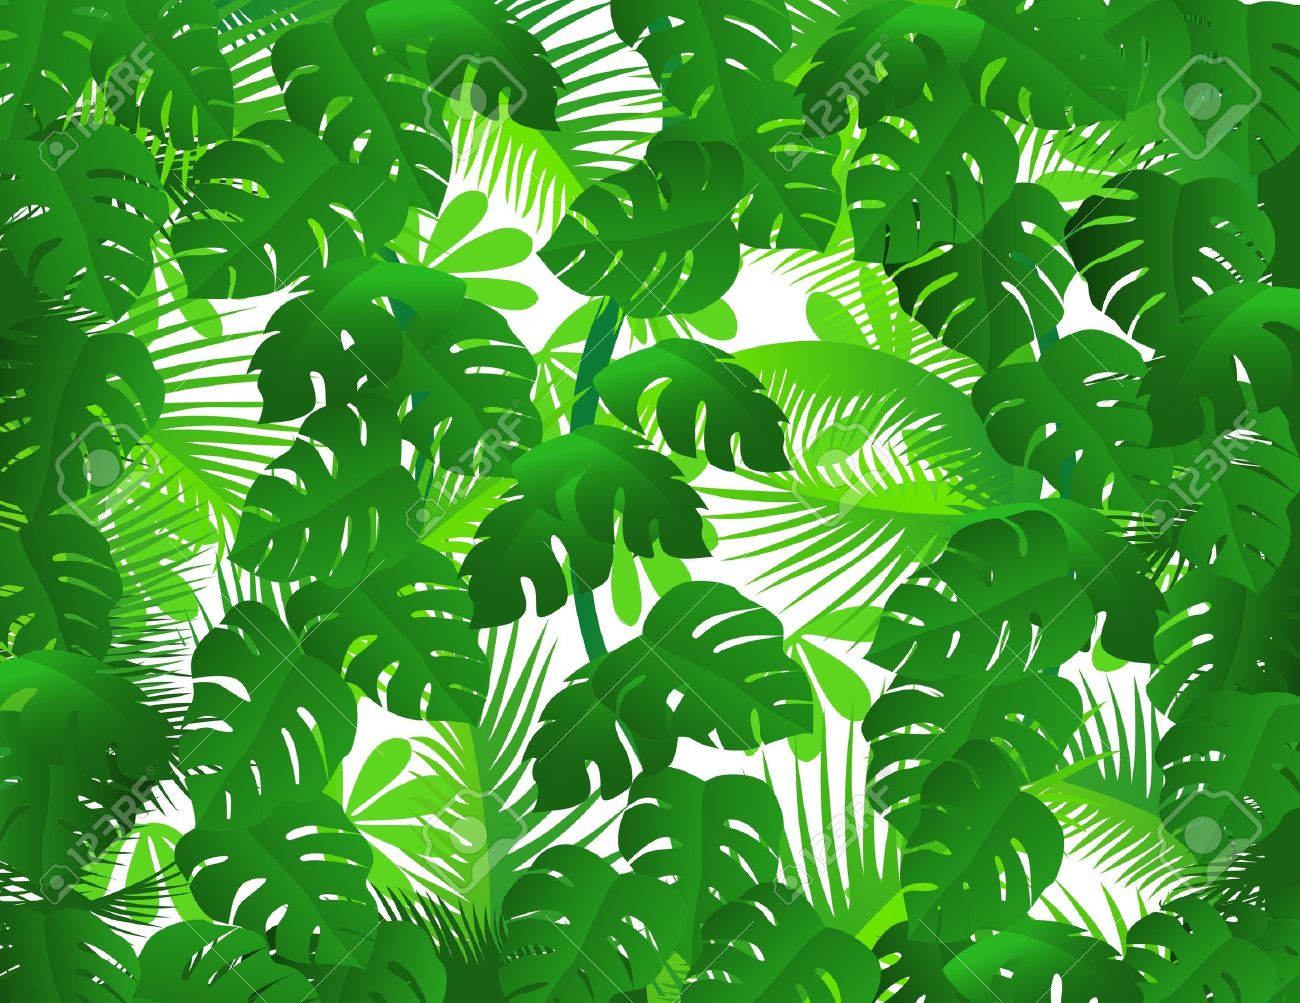 green forest background royalty free cliparts vectors and stock